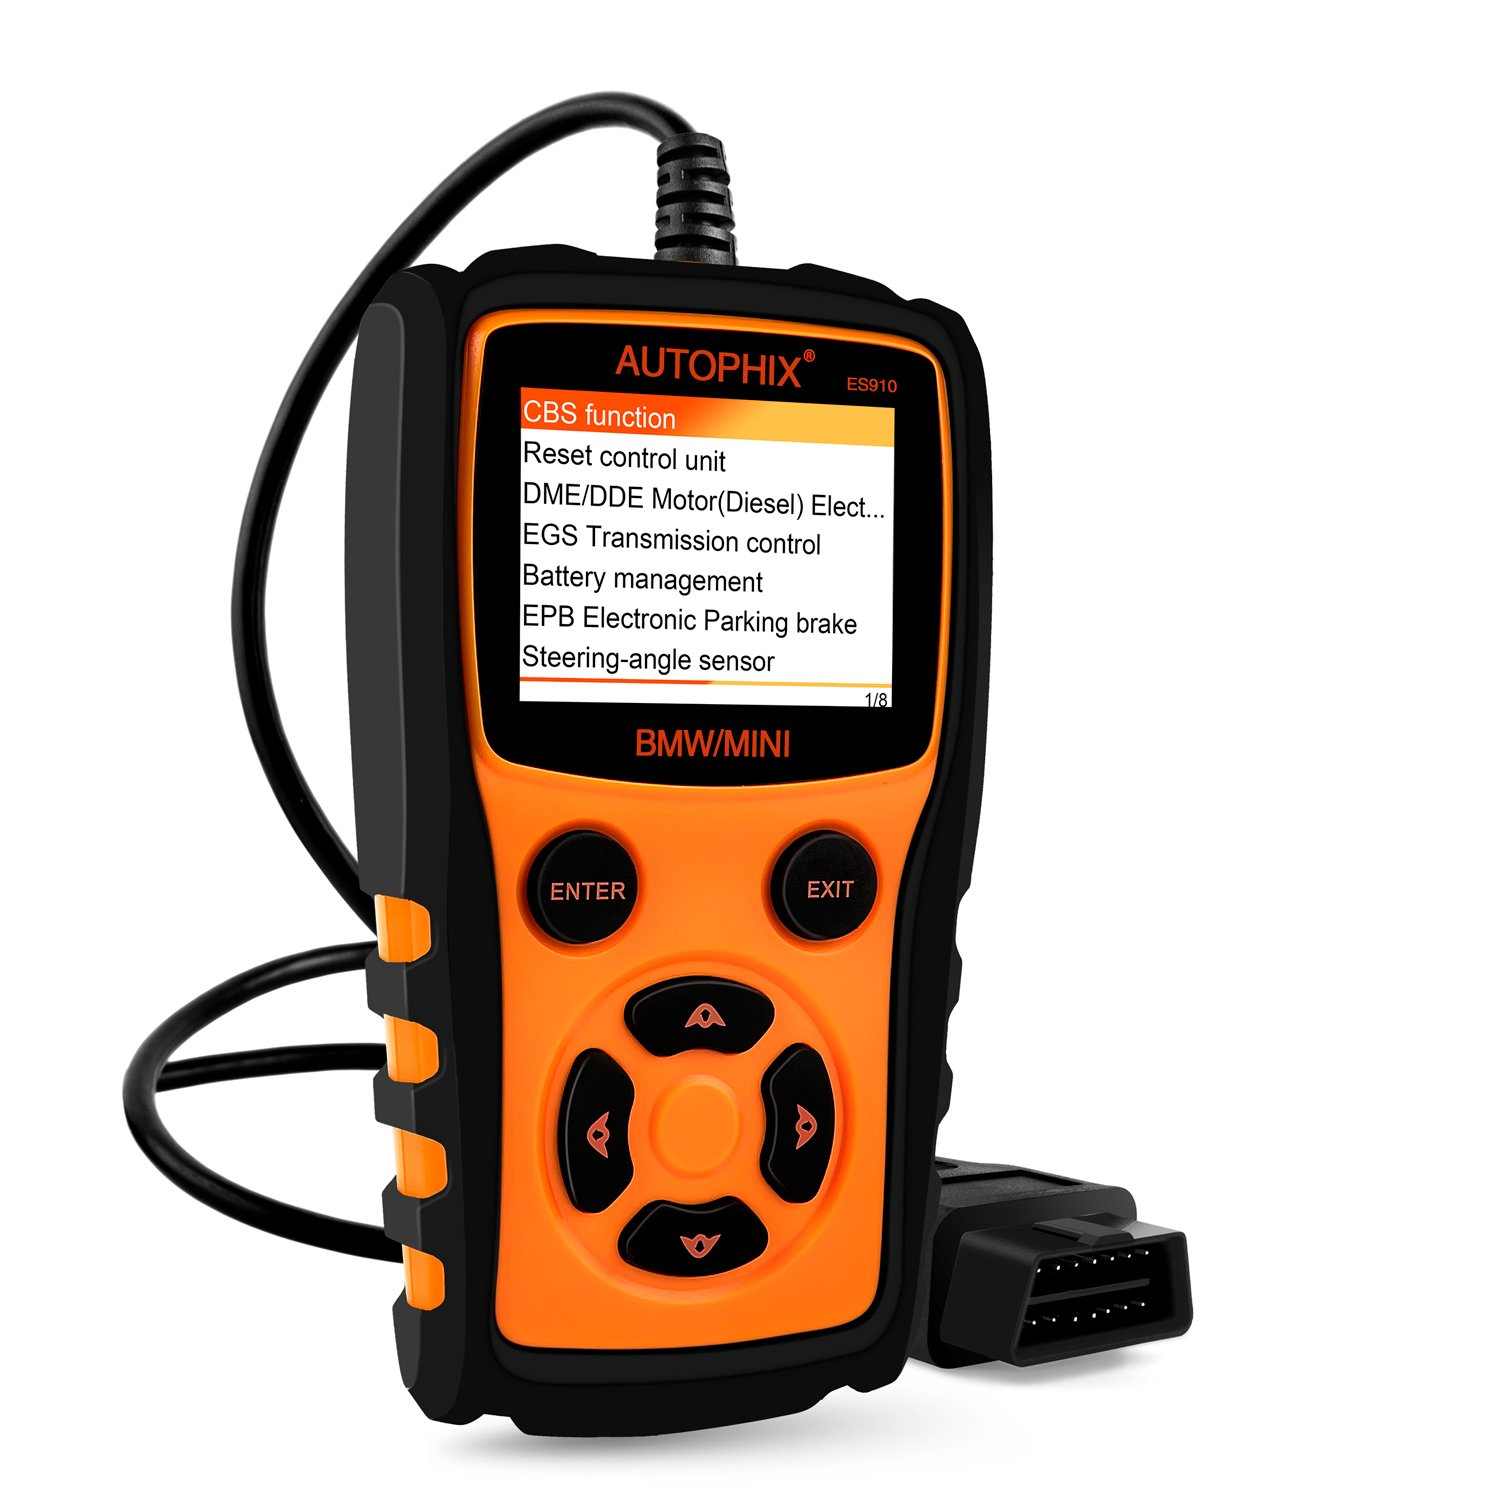 AUTOPHIX ES910 BMW Diagnostics Scanners OBD II OBD2 Automotive Code Readers  Check Engine Transmission ABS Airbag Fault Codes Scan Tool with EPB